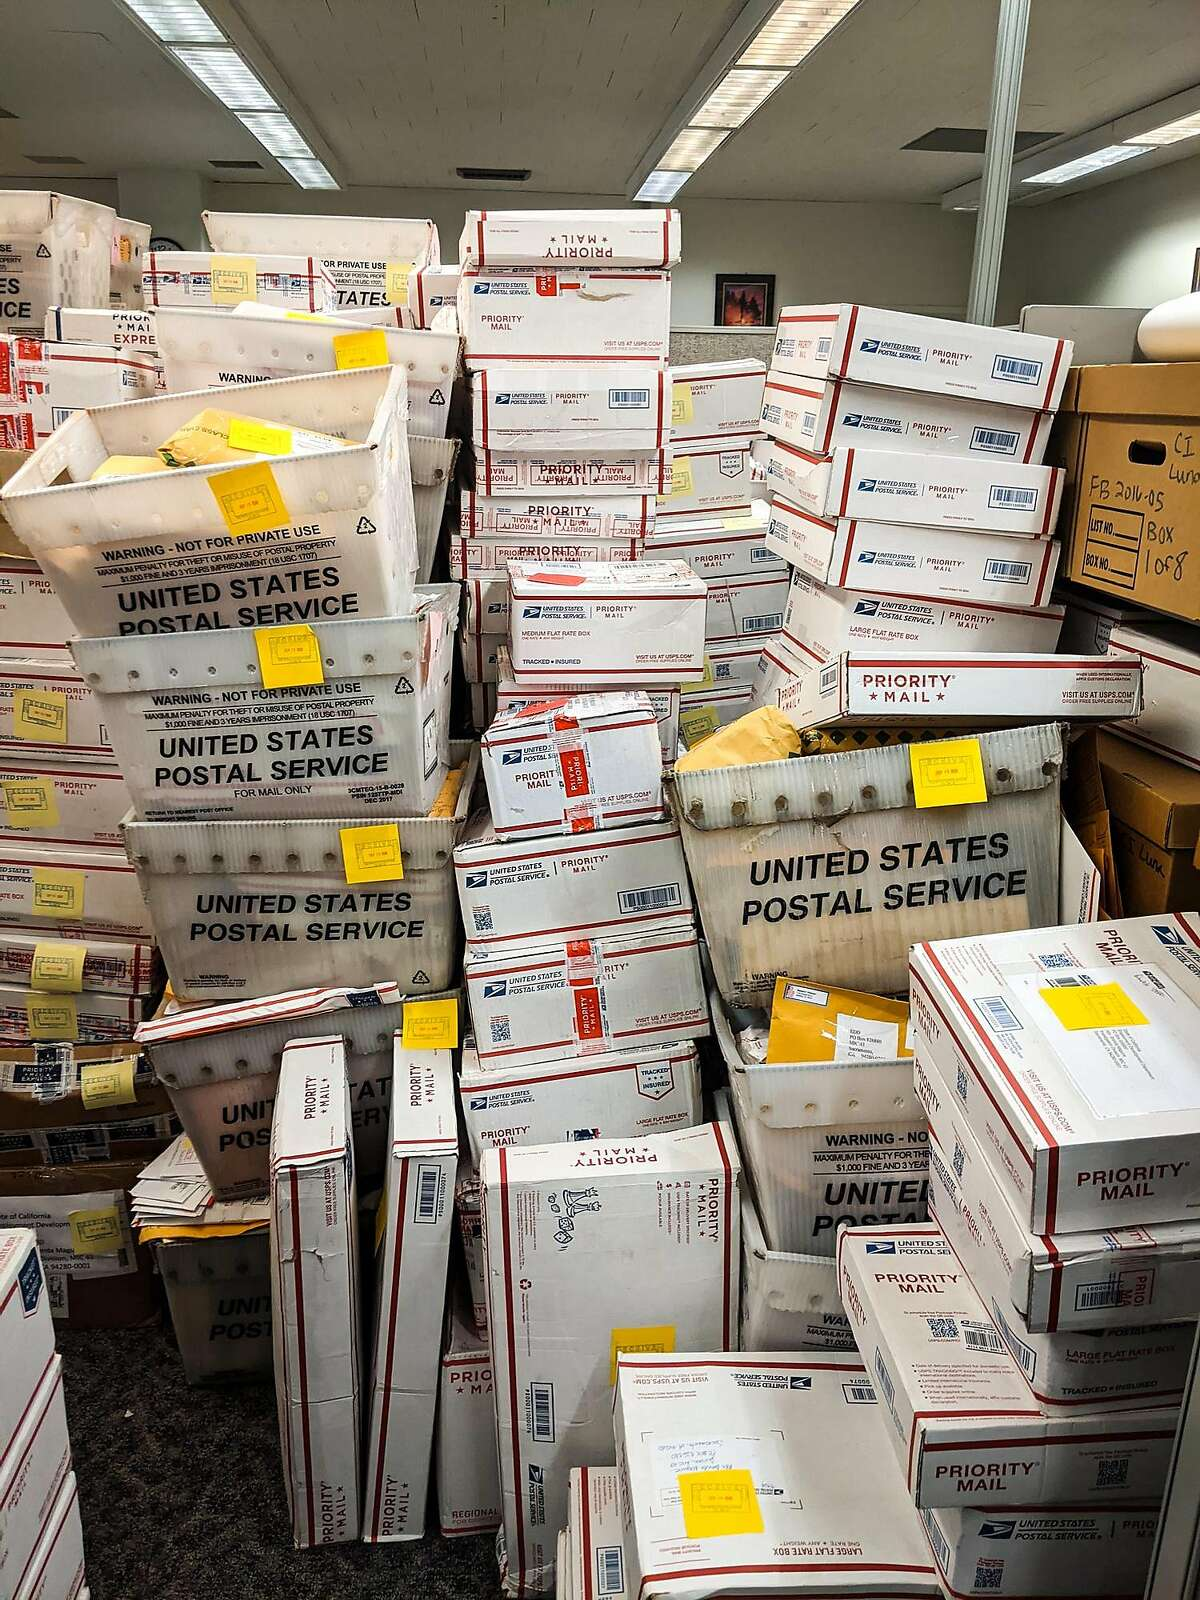 The California State Auditor asked the Employment Development Department in March 2019 to stop putting full Social Security numbers on letters it sends out, but it continues to do so on the vast majority of mail, including some pieces found in this vast pile of mail returned to EDD.